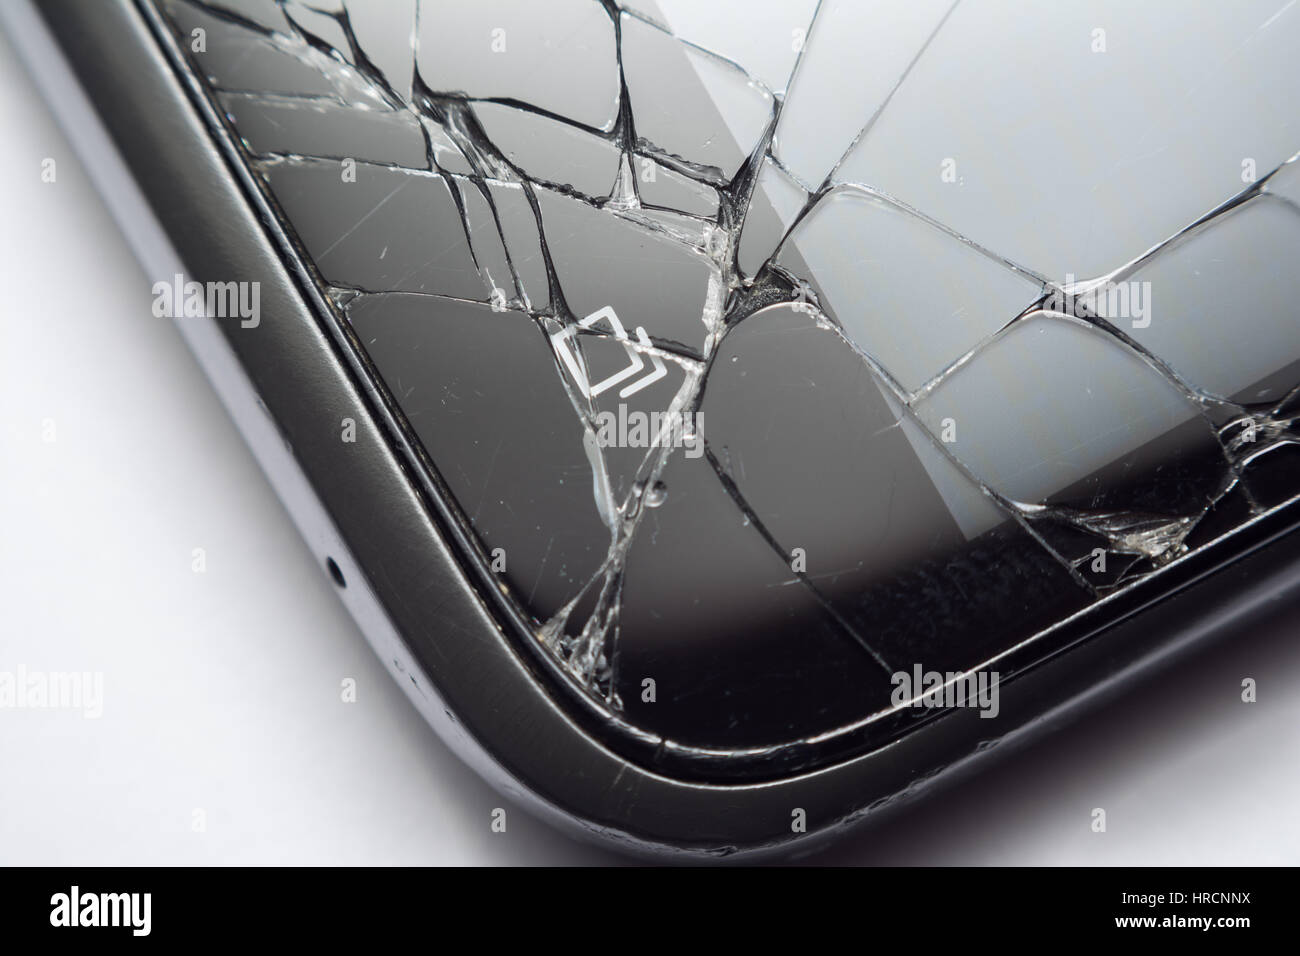 Close up of a cracked smartphone screen after being dropped on the ground. Concept for broken phones. - Stock Image